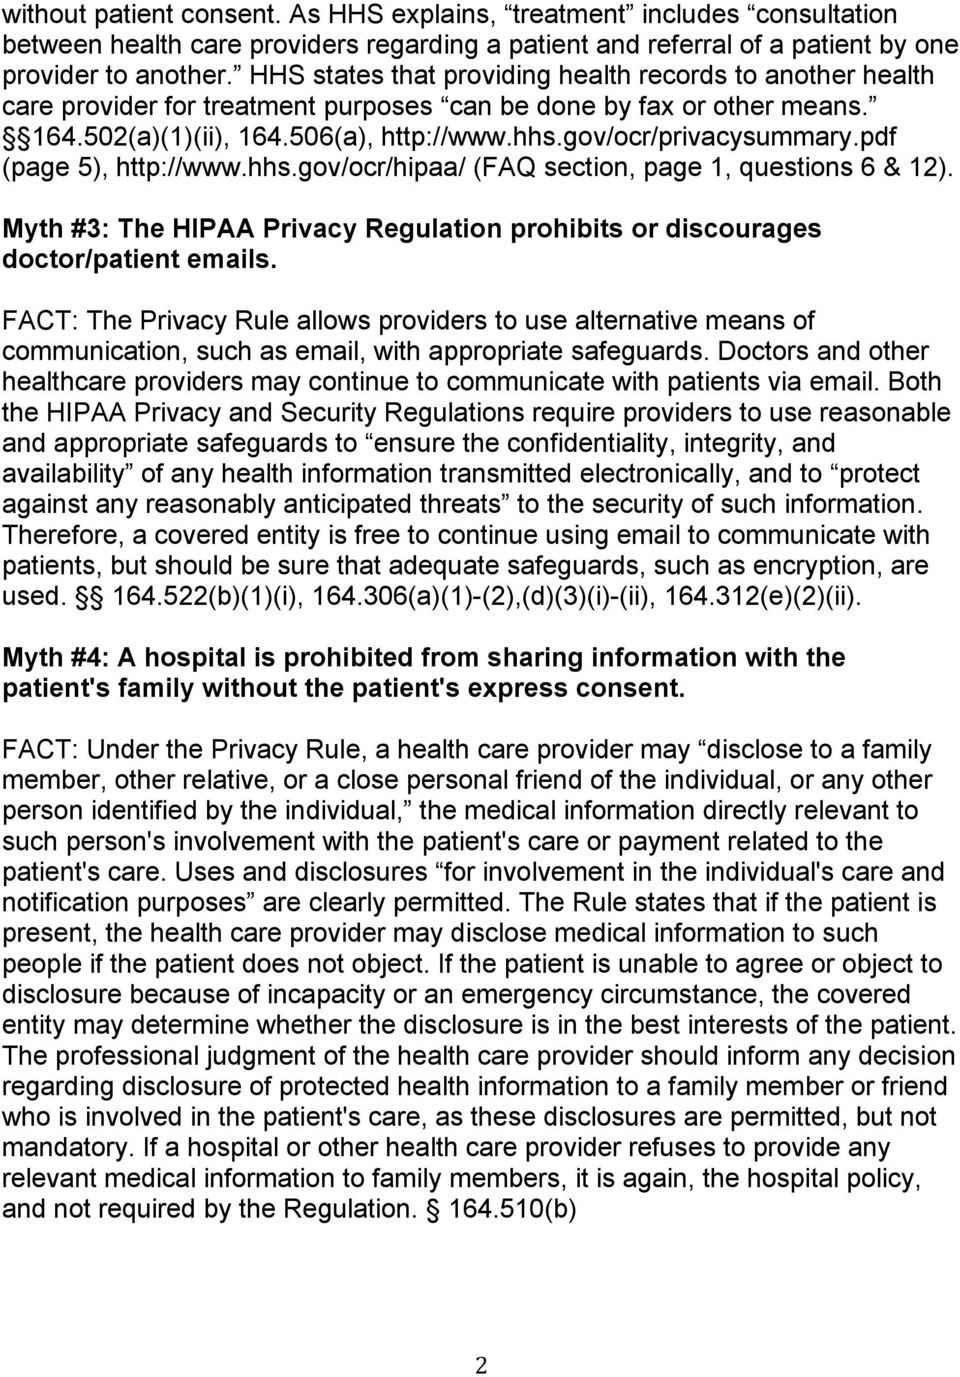 pdf (page 5), http://www.hhs.gov/ocr/hipaa/ (FAQ section, page 1, questions 6 & 12). Myth #3: The HIPAA Privacy Regulation prohibits or discourages doctor/patient emails.